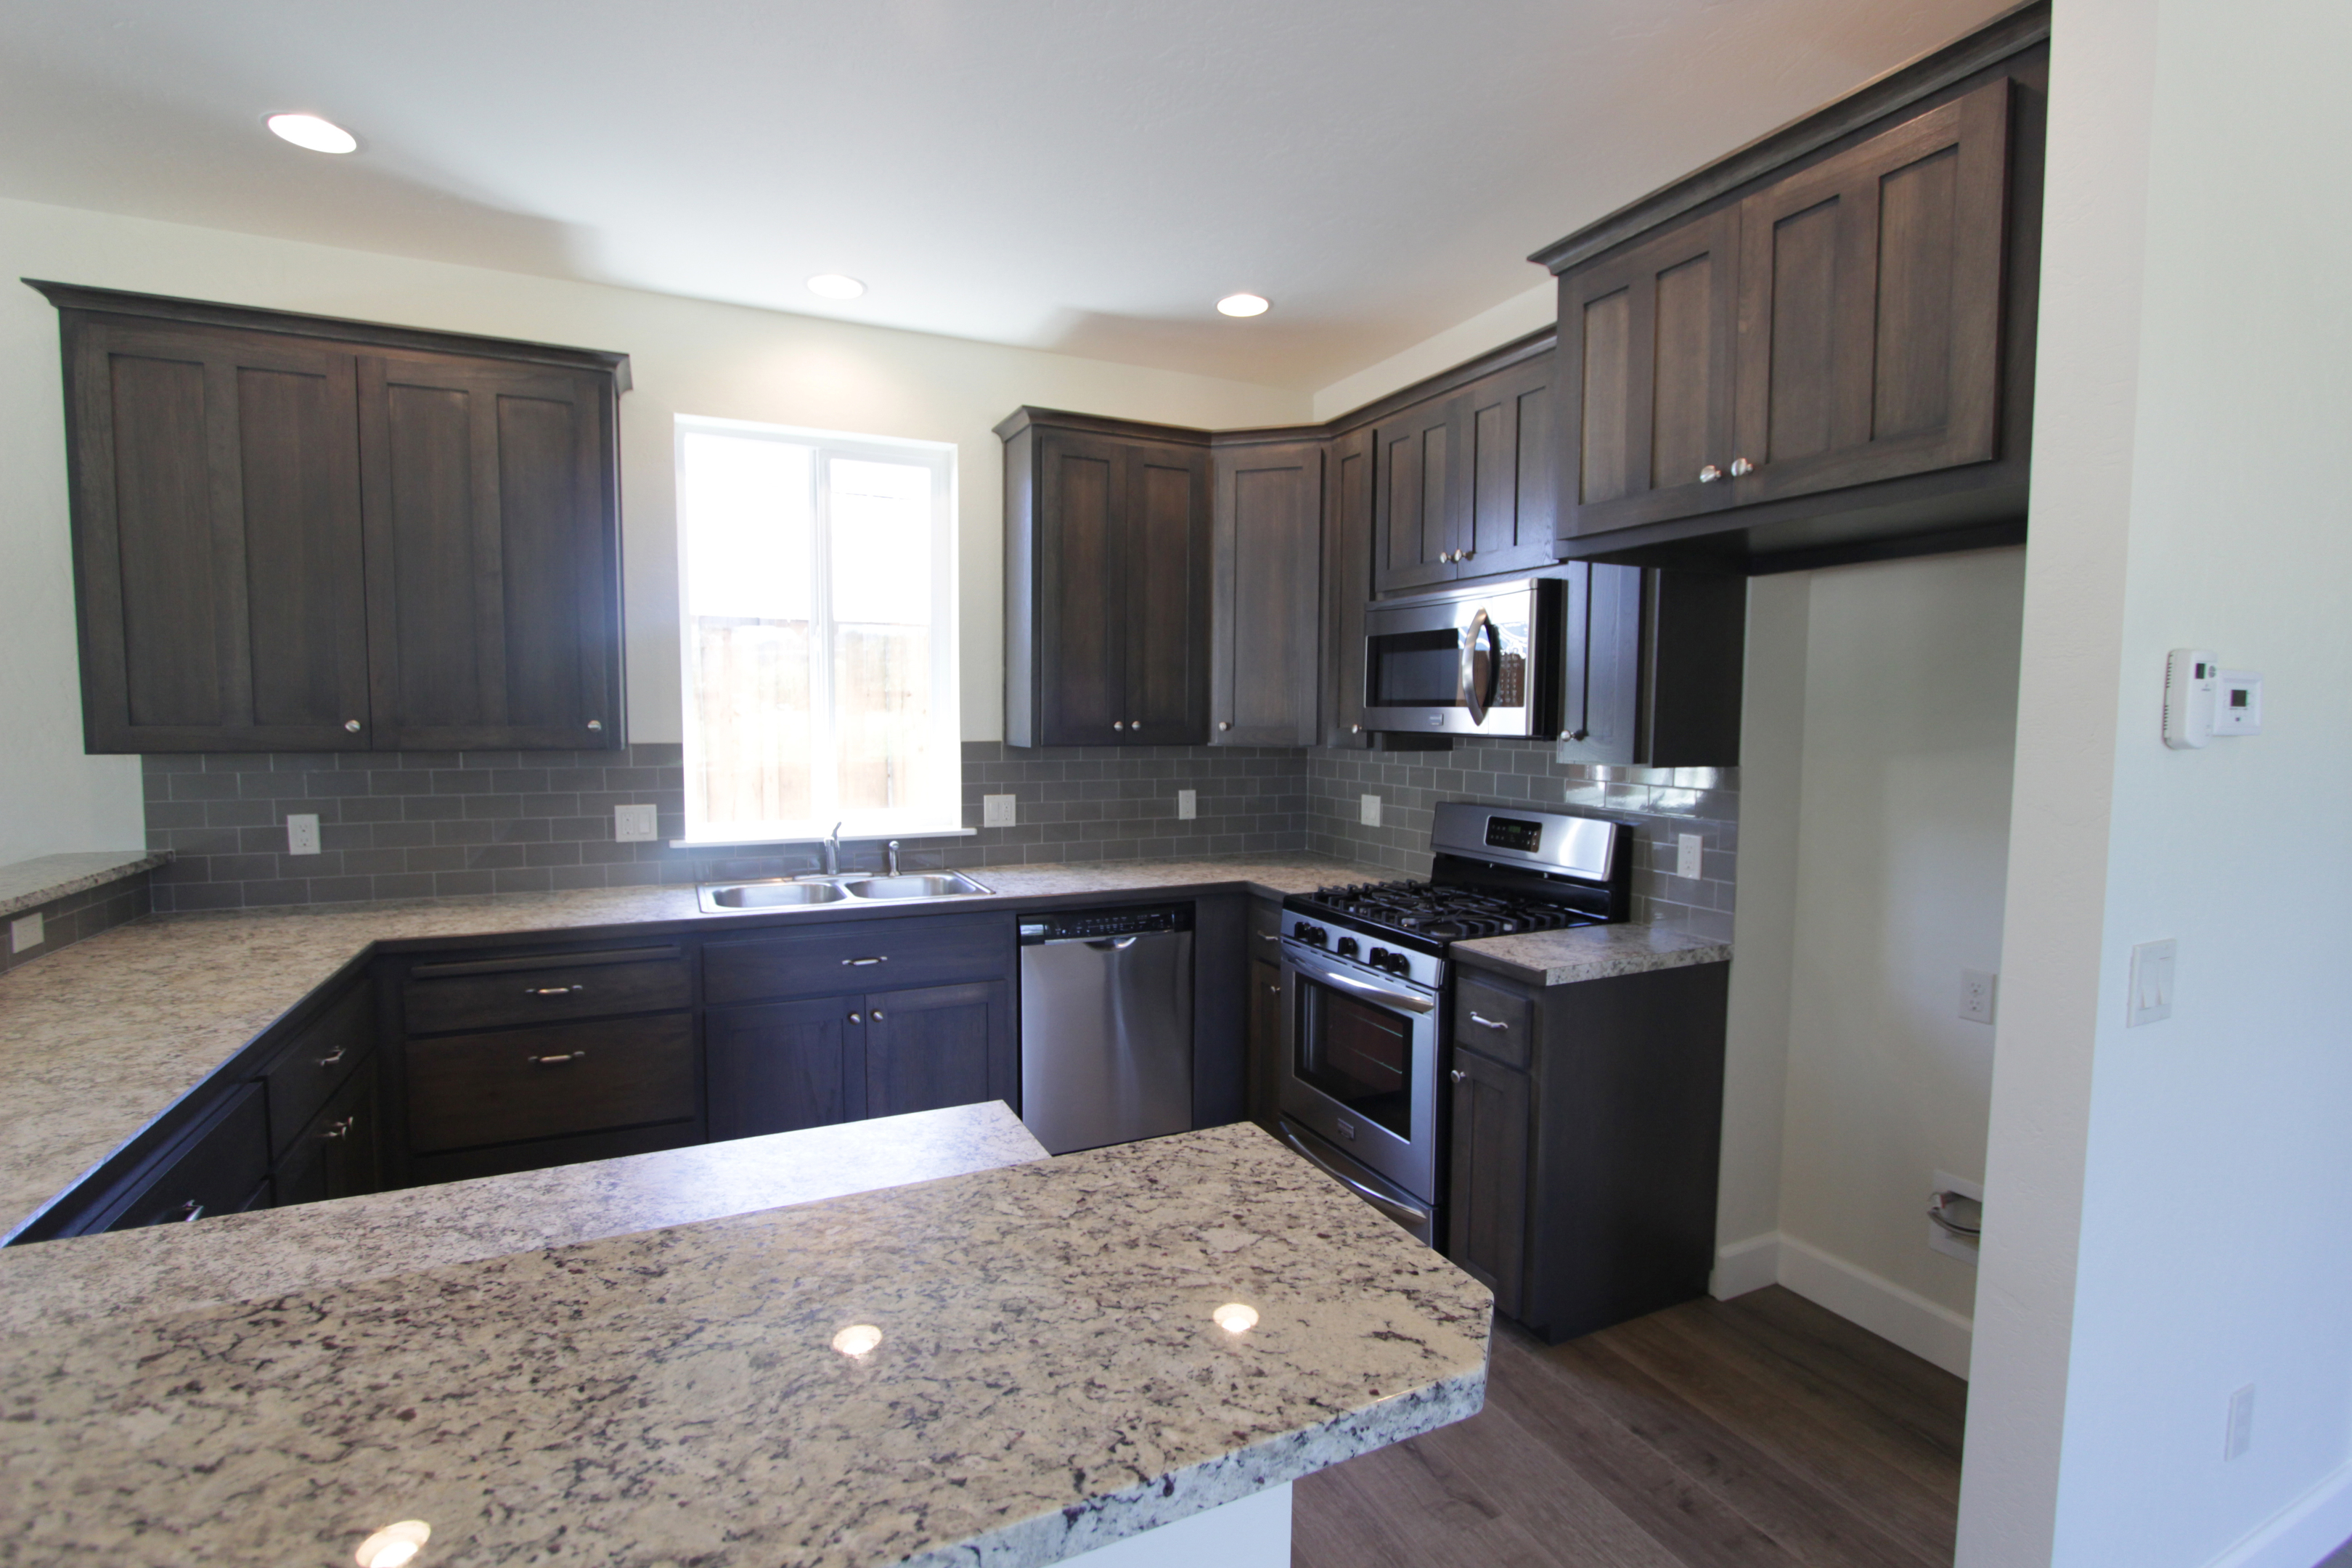 hickory shaker style kitchen cabinets best wood stain for affordable custom showroom